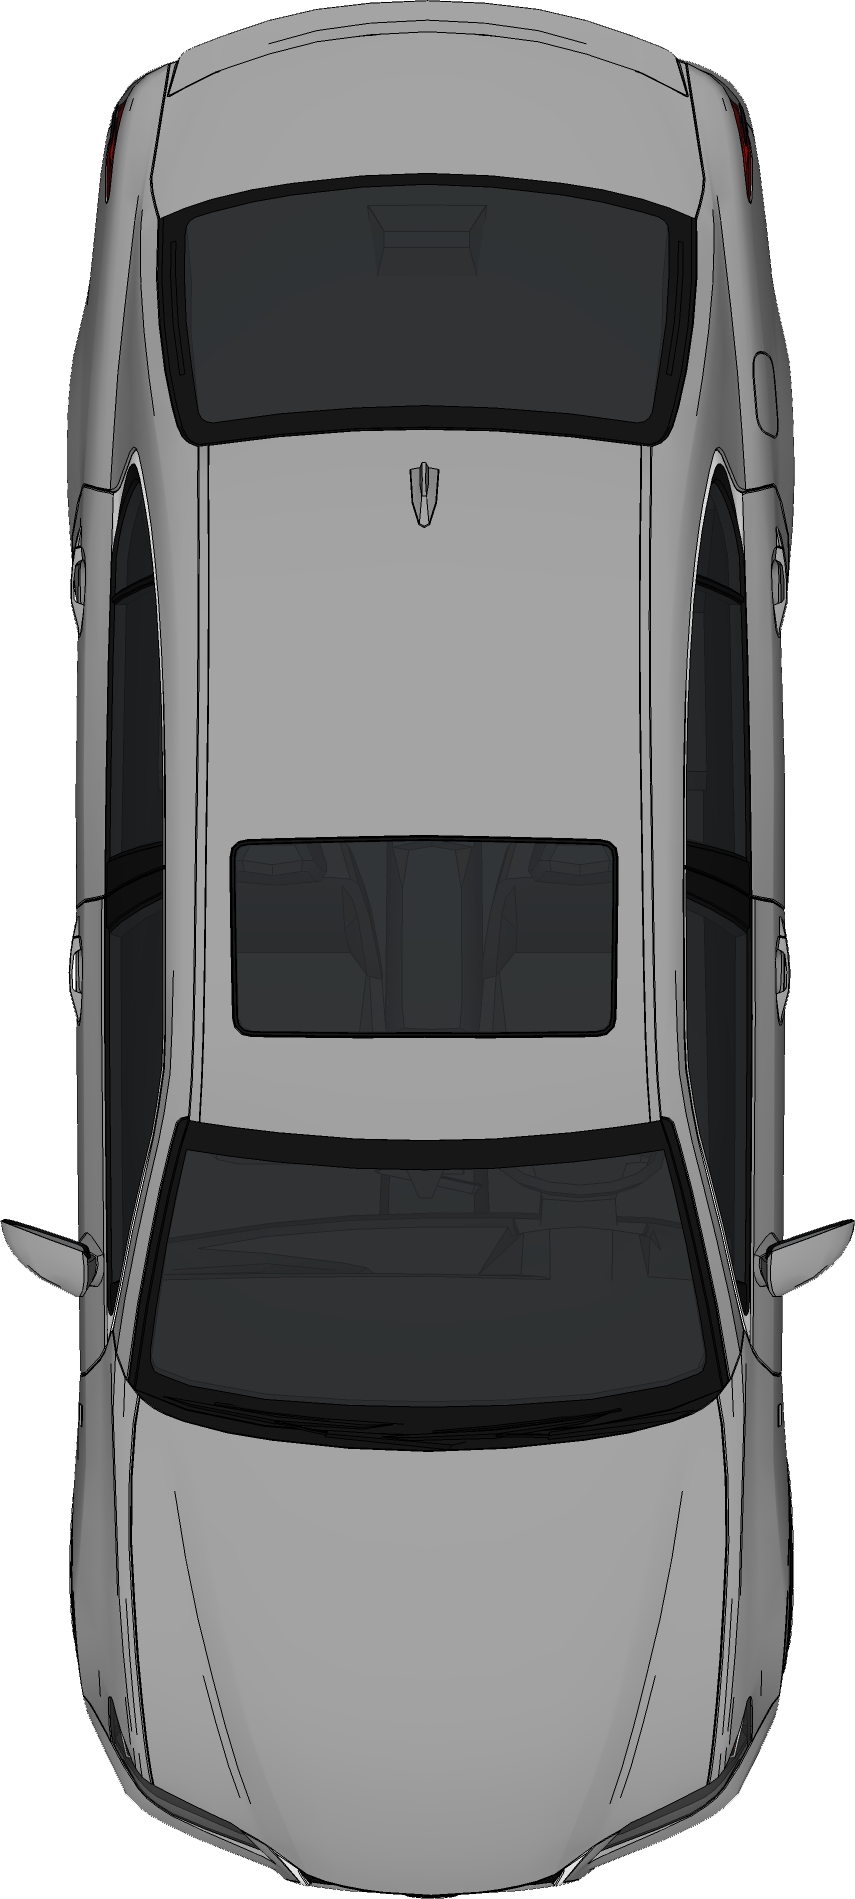 Clipart car top view vector library stock Car Clip art - bed top view 855*1899 transprent Png Free Download ... vector library stock